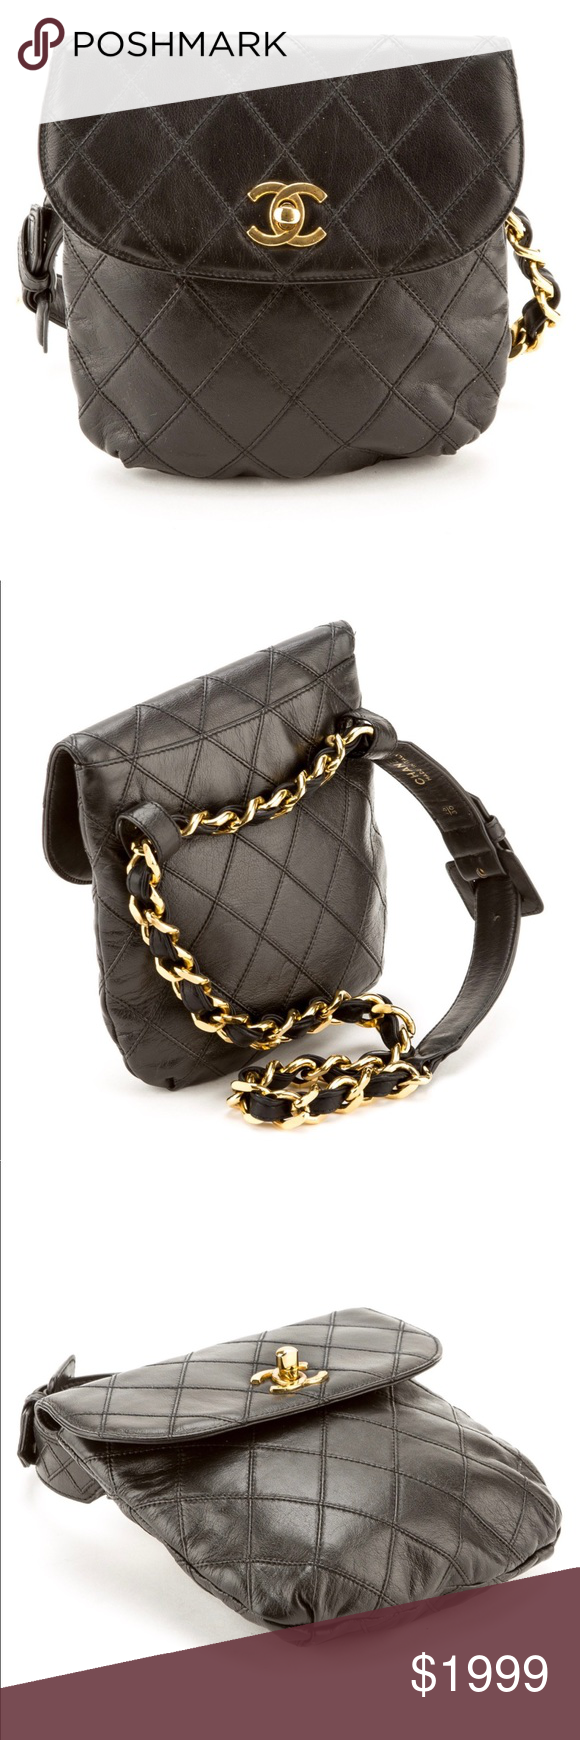 50f83ca4b468 Authentic CHANEL fanny pack belt bum bag Quilted Hottest bag of 2018-  Vintage Chanel Black